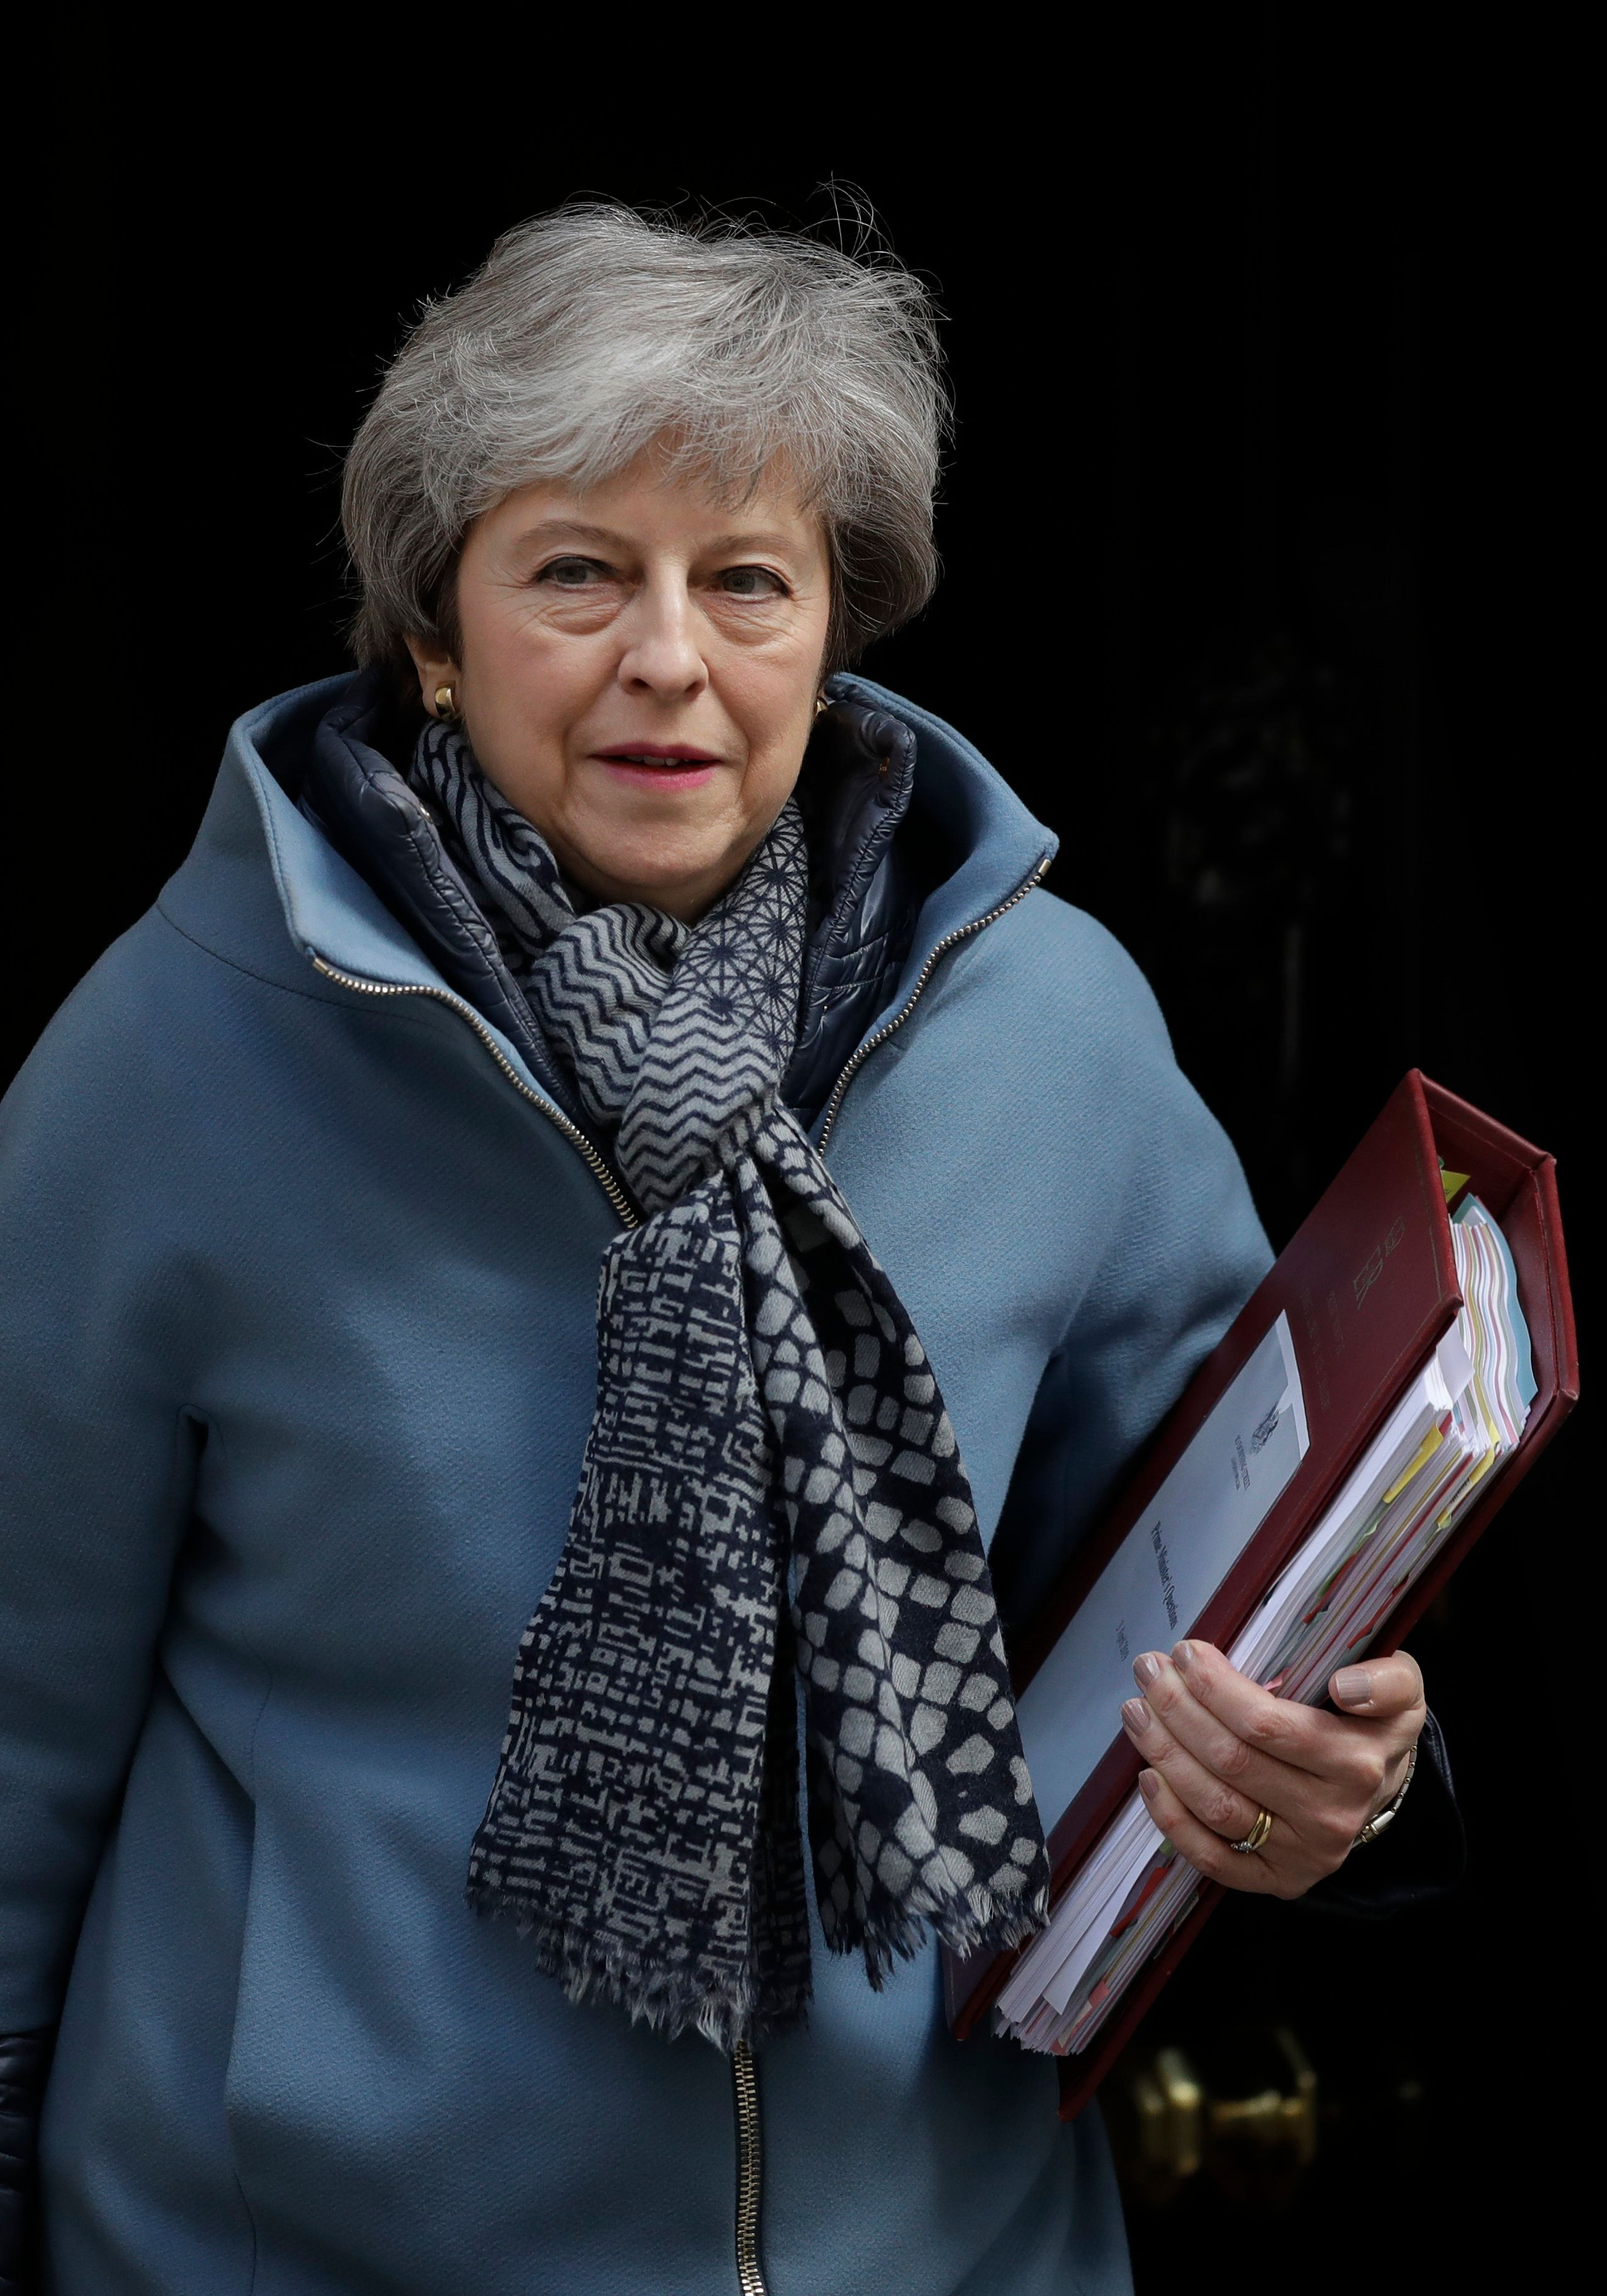 All You Need To Know Ahead Of Another Huge Week For Brexit